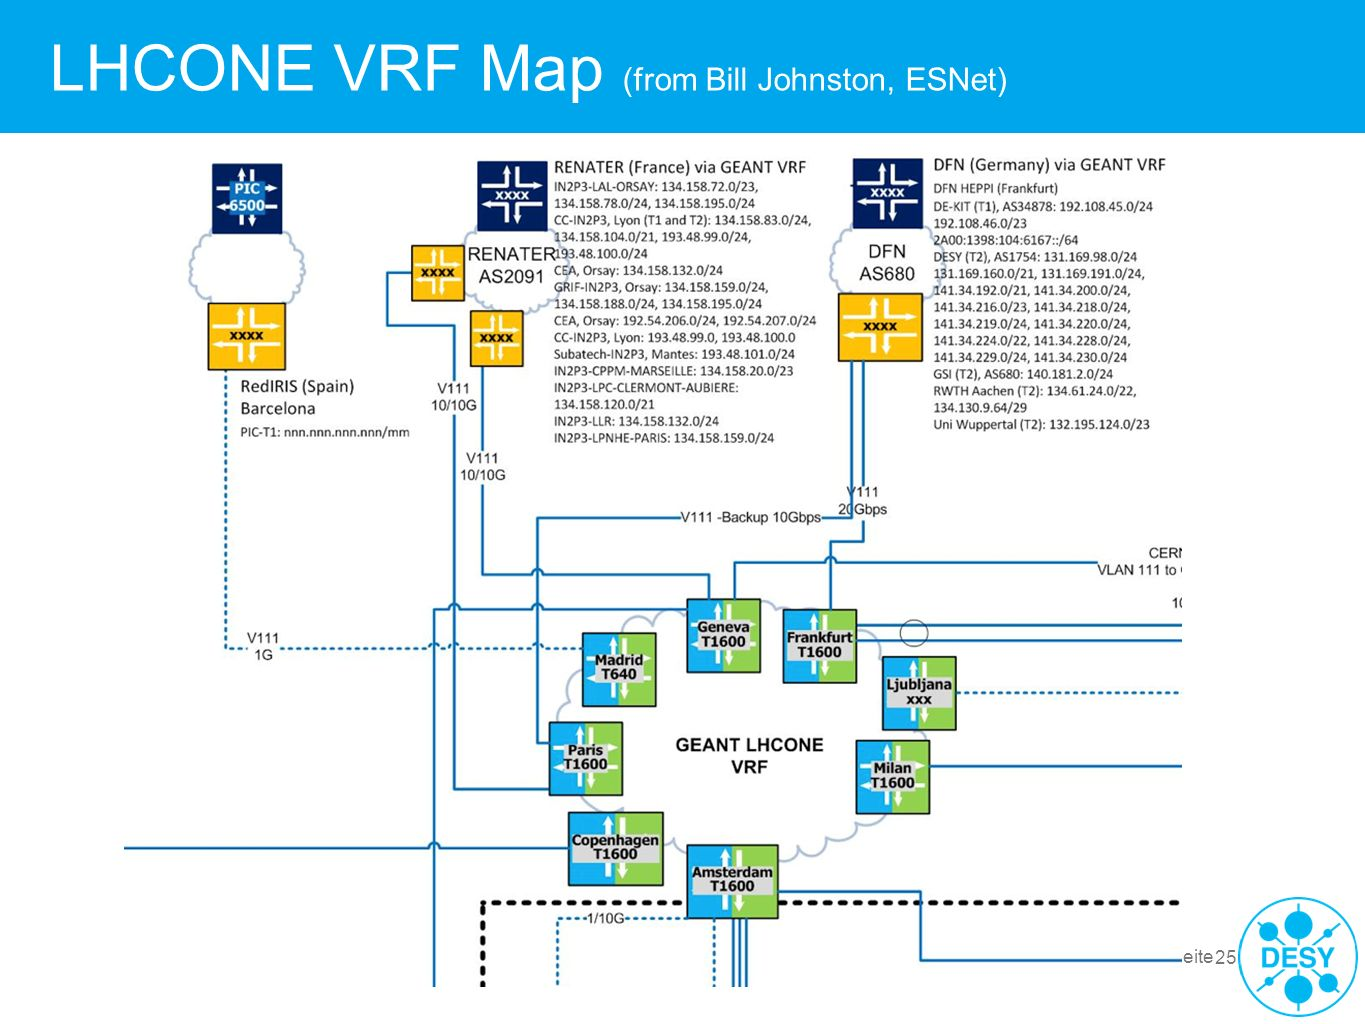 LHCONE VRF Map (from Bill Johnston, ESNet)